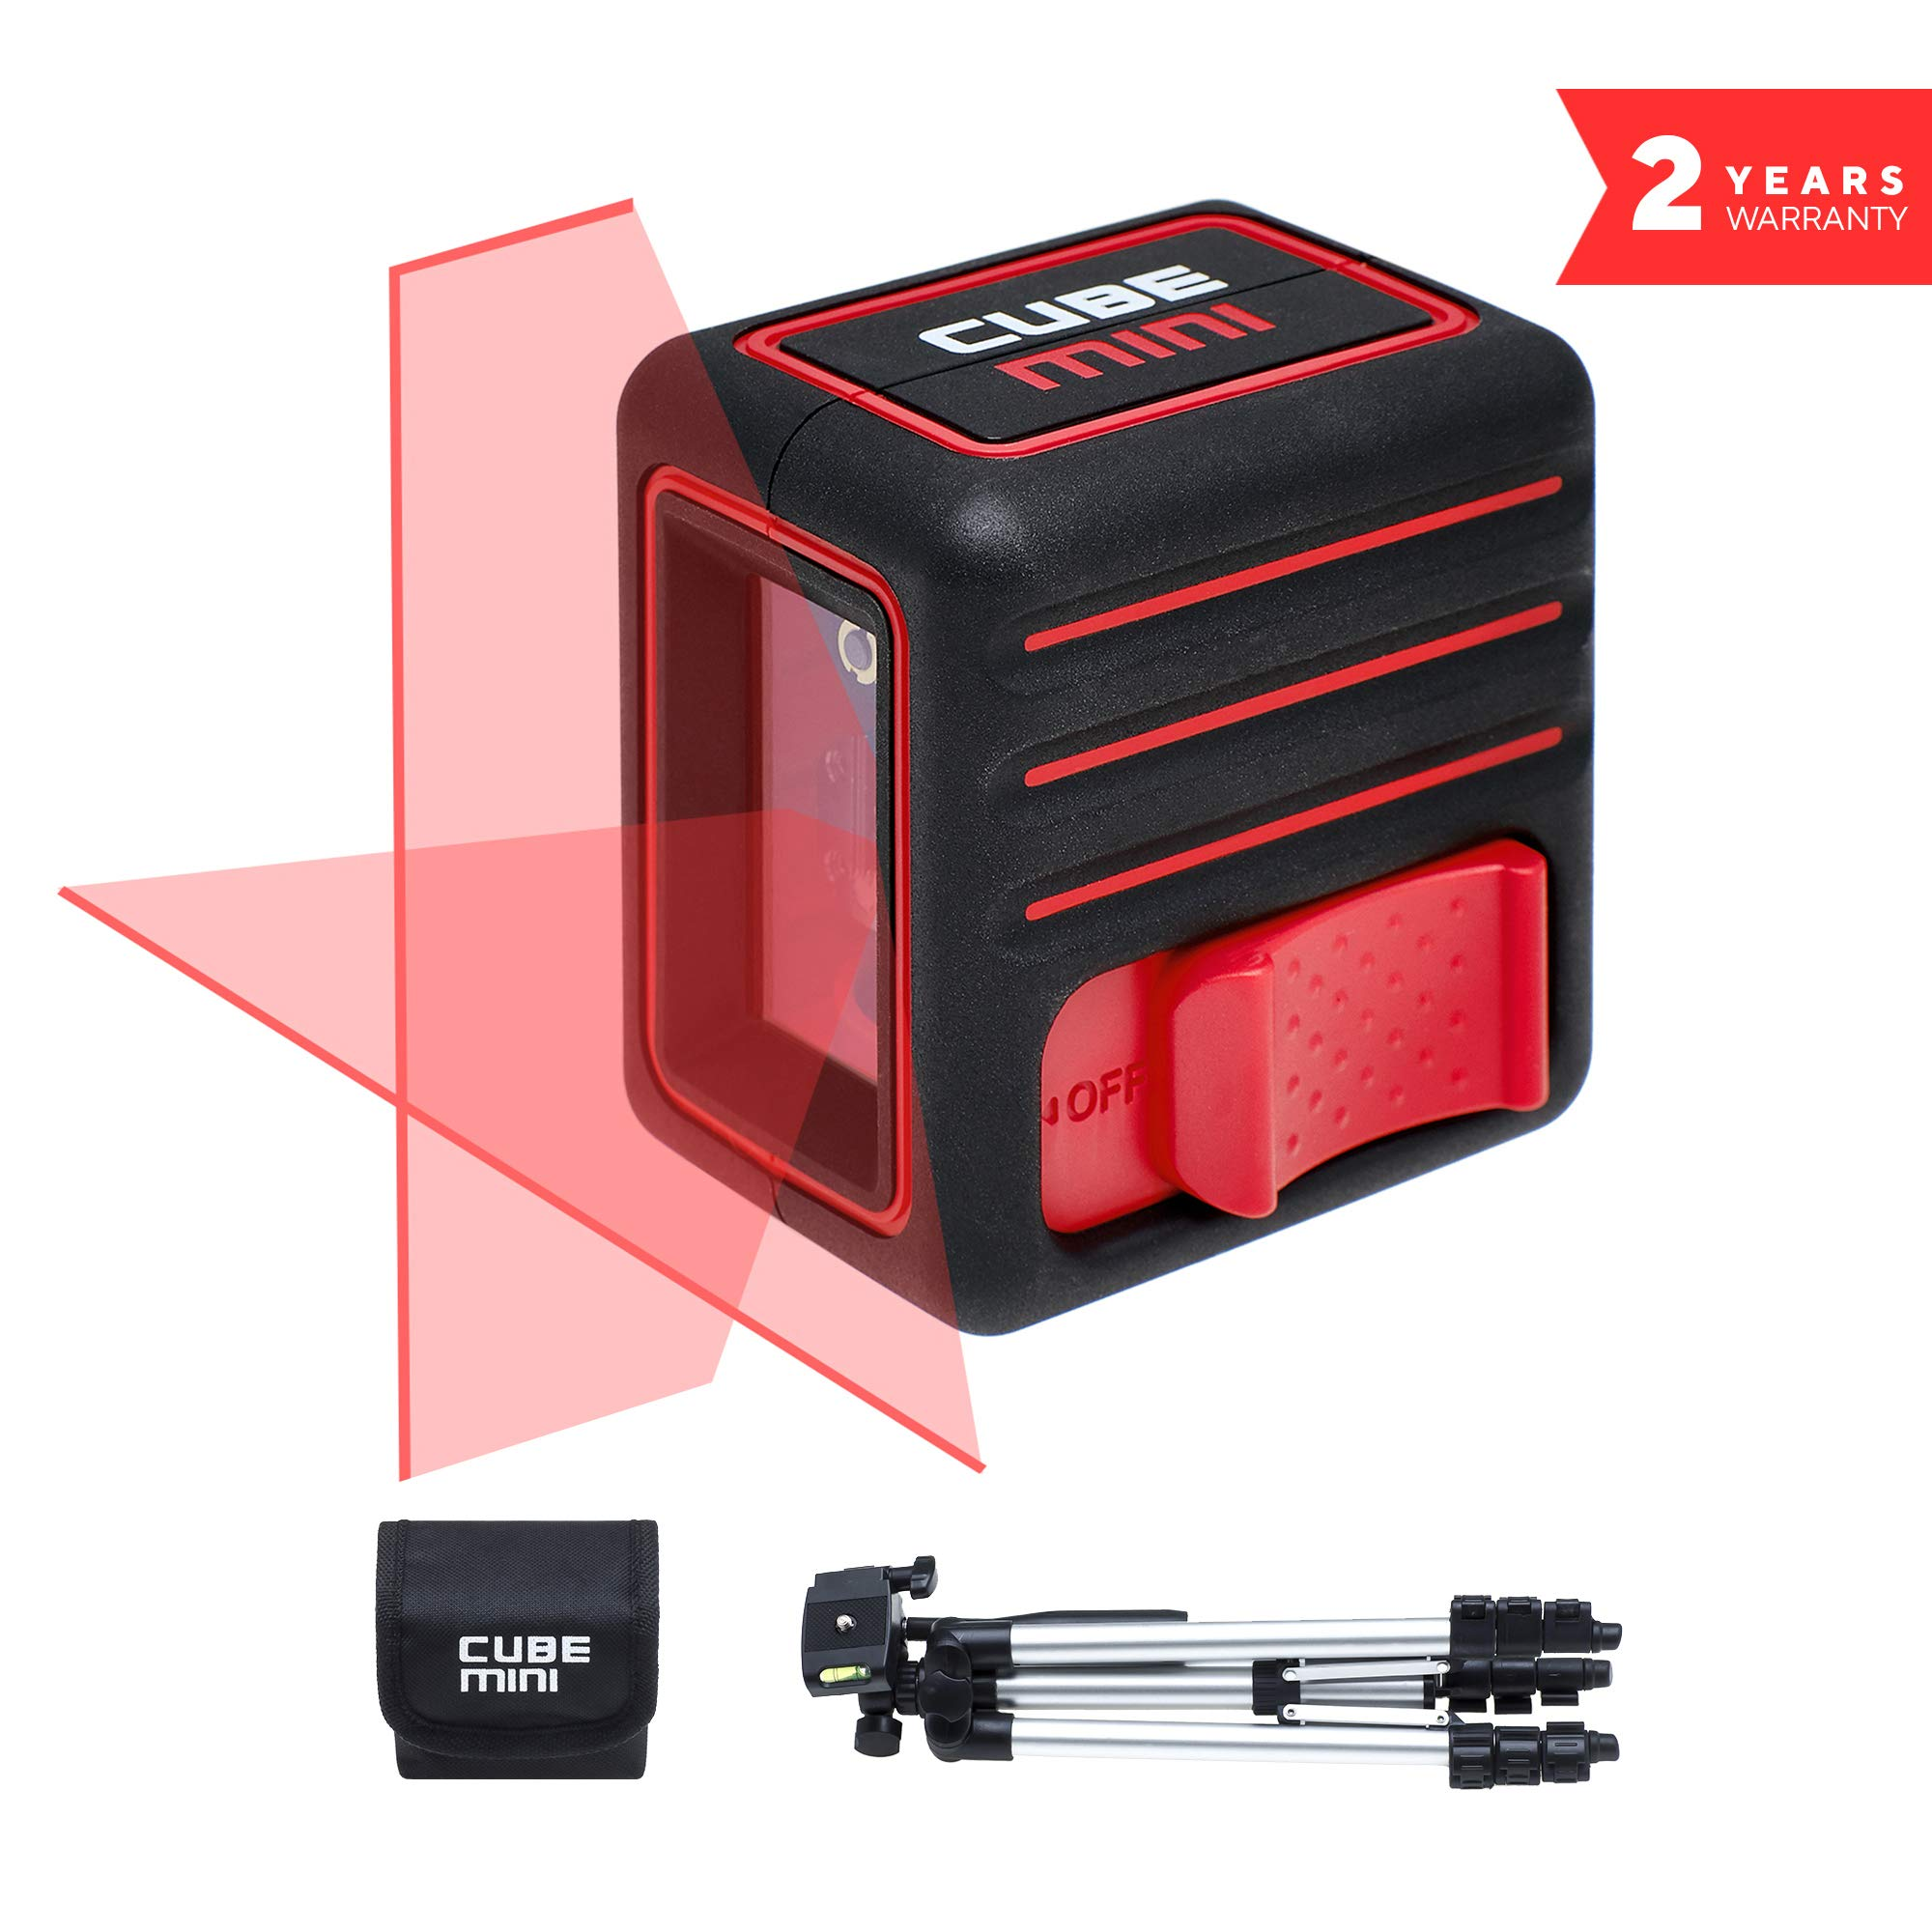 Laser Level, ADA Cube Mini Professional edition, Laser Level, Black/Red, Crossline Self-Leveling Laser Level kit with Tripod, Carrying Pouch, batteries and manual included